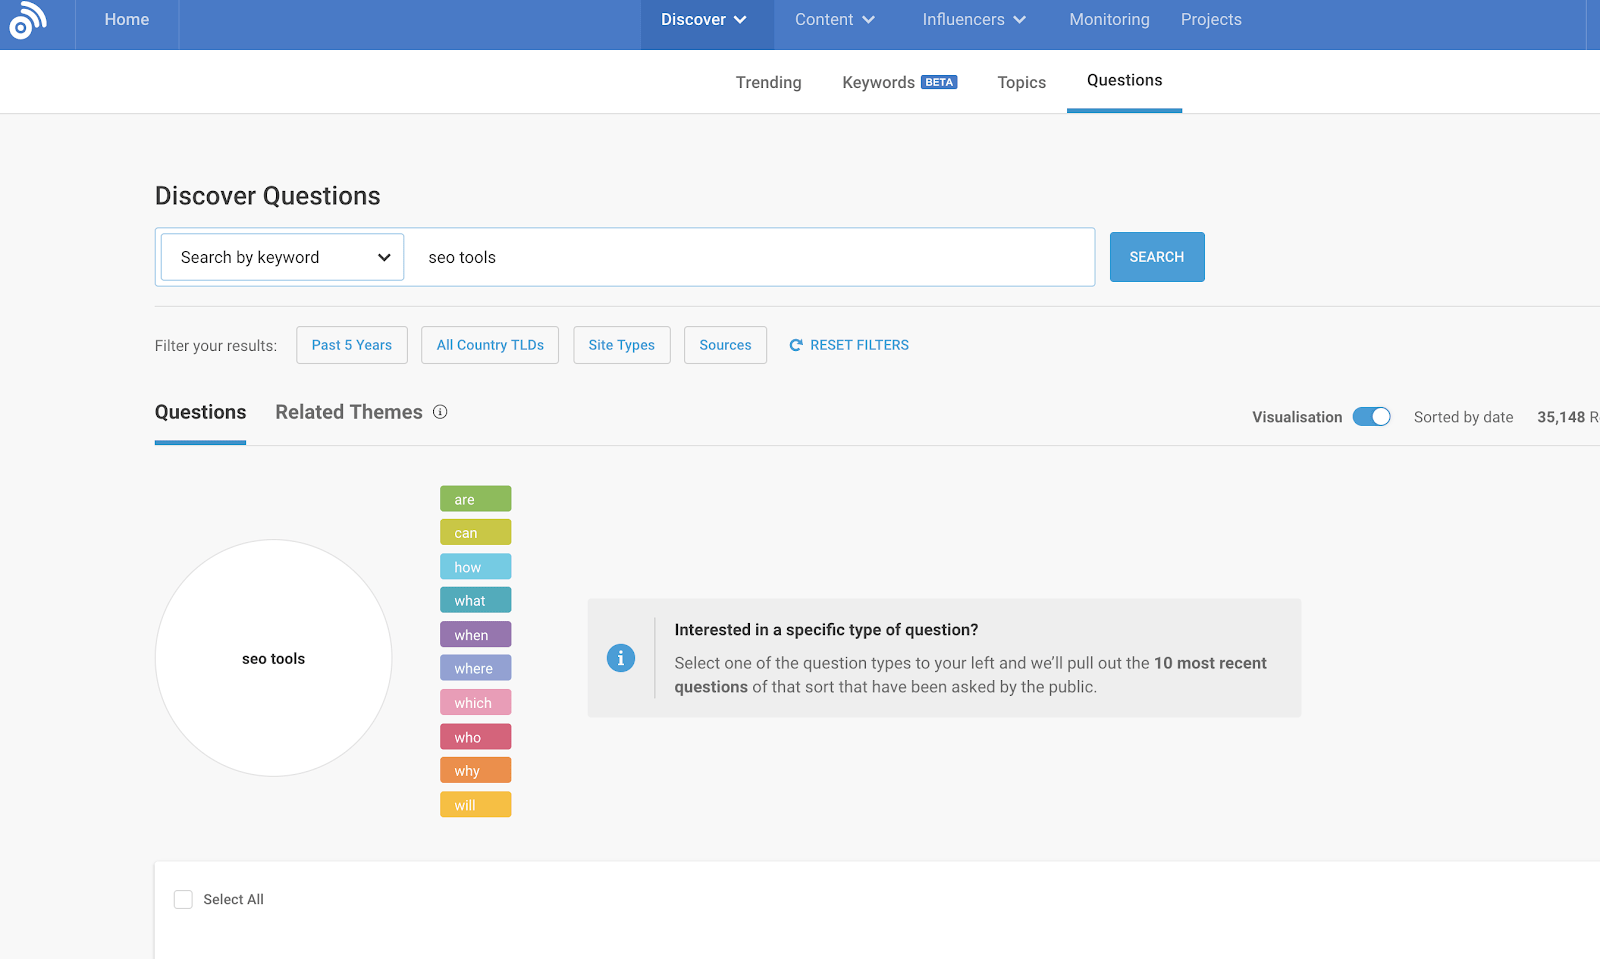 BuzzSumo helps find questions on the web related to a given keyword